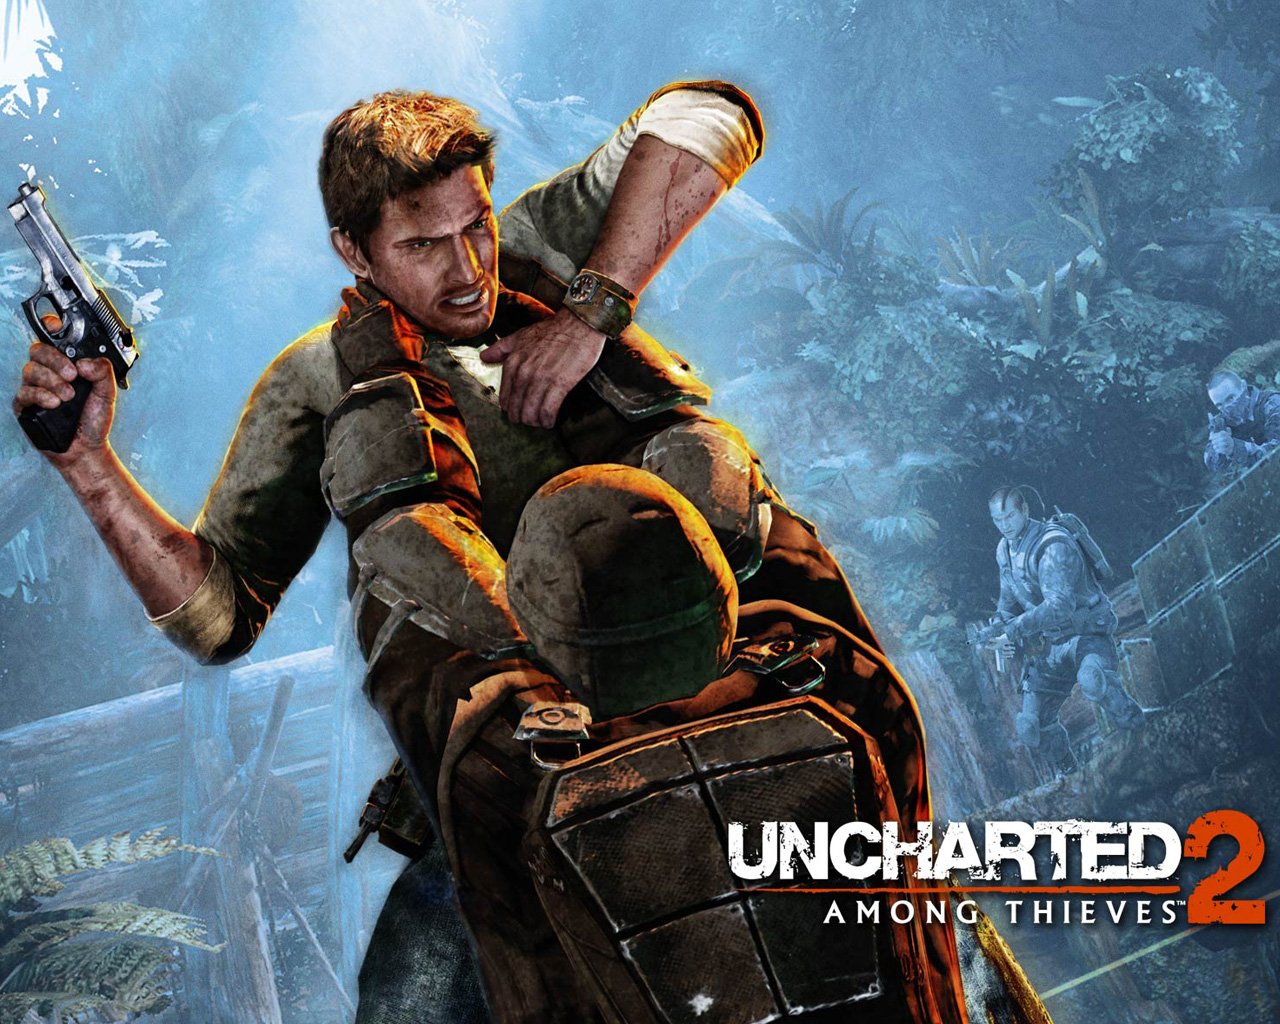 Free Uncharted 2: Among Thieves Wallpaper in 1280x1024